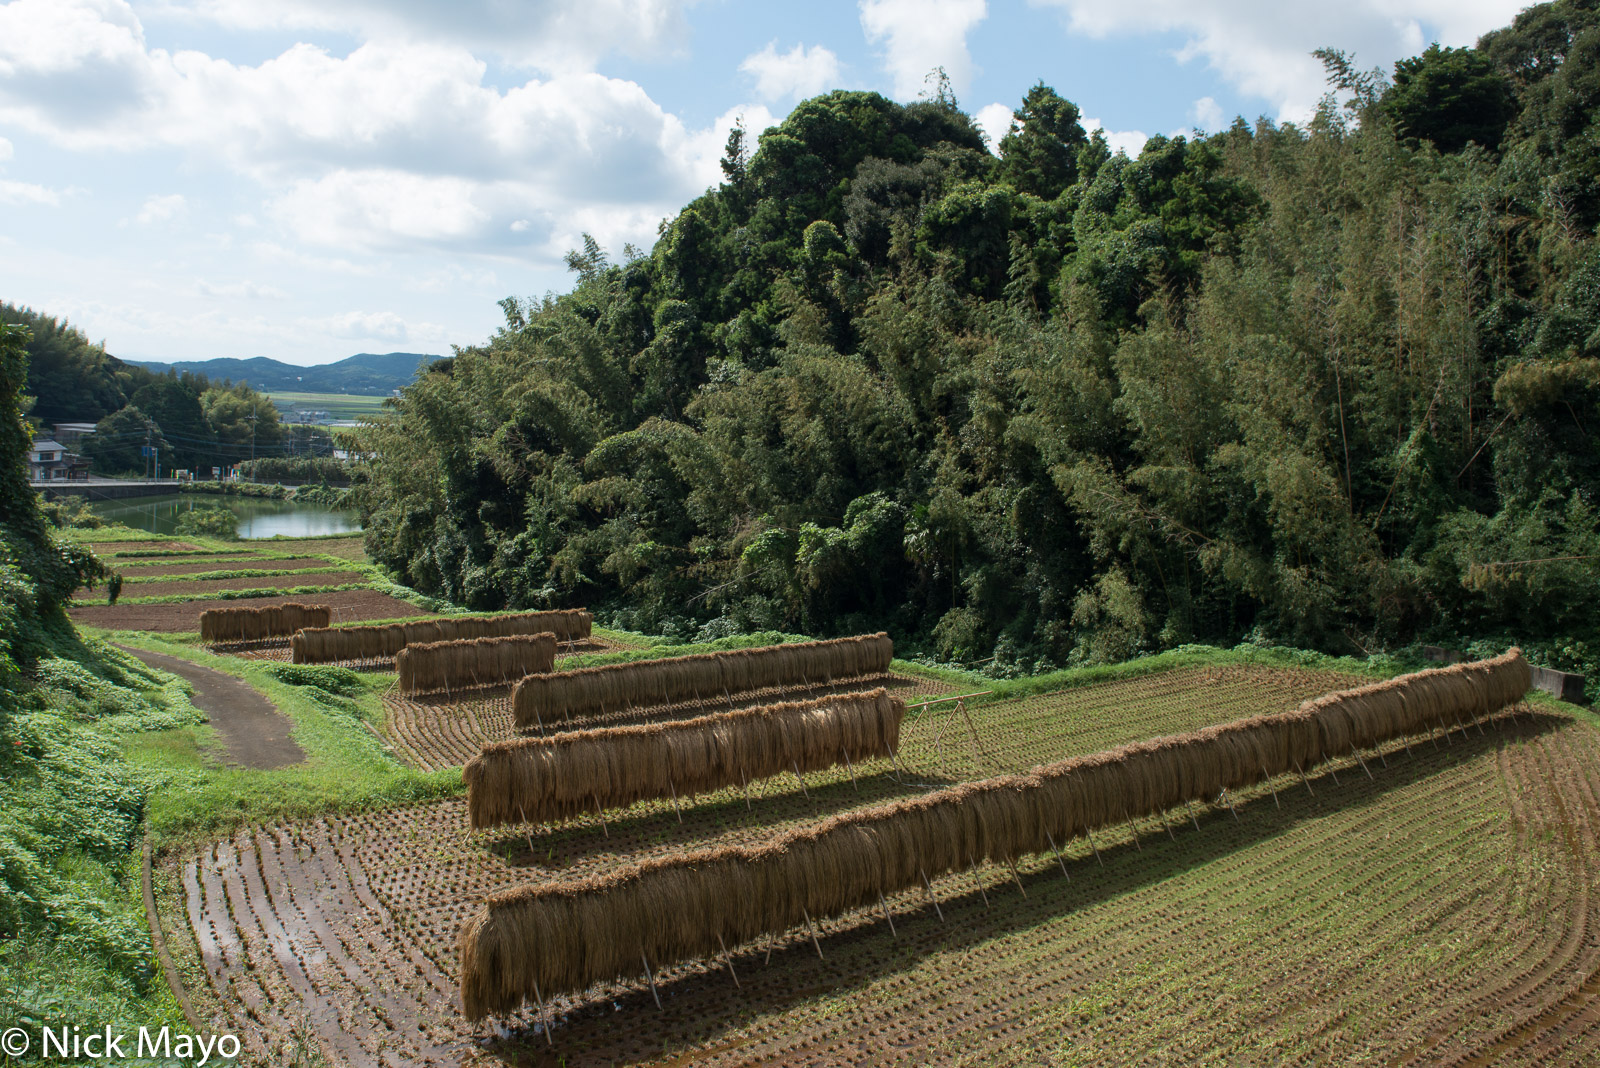 Drying Rack, Japan, Kyushu, Paddy, photo